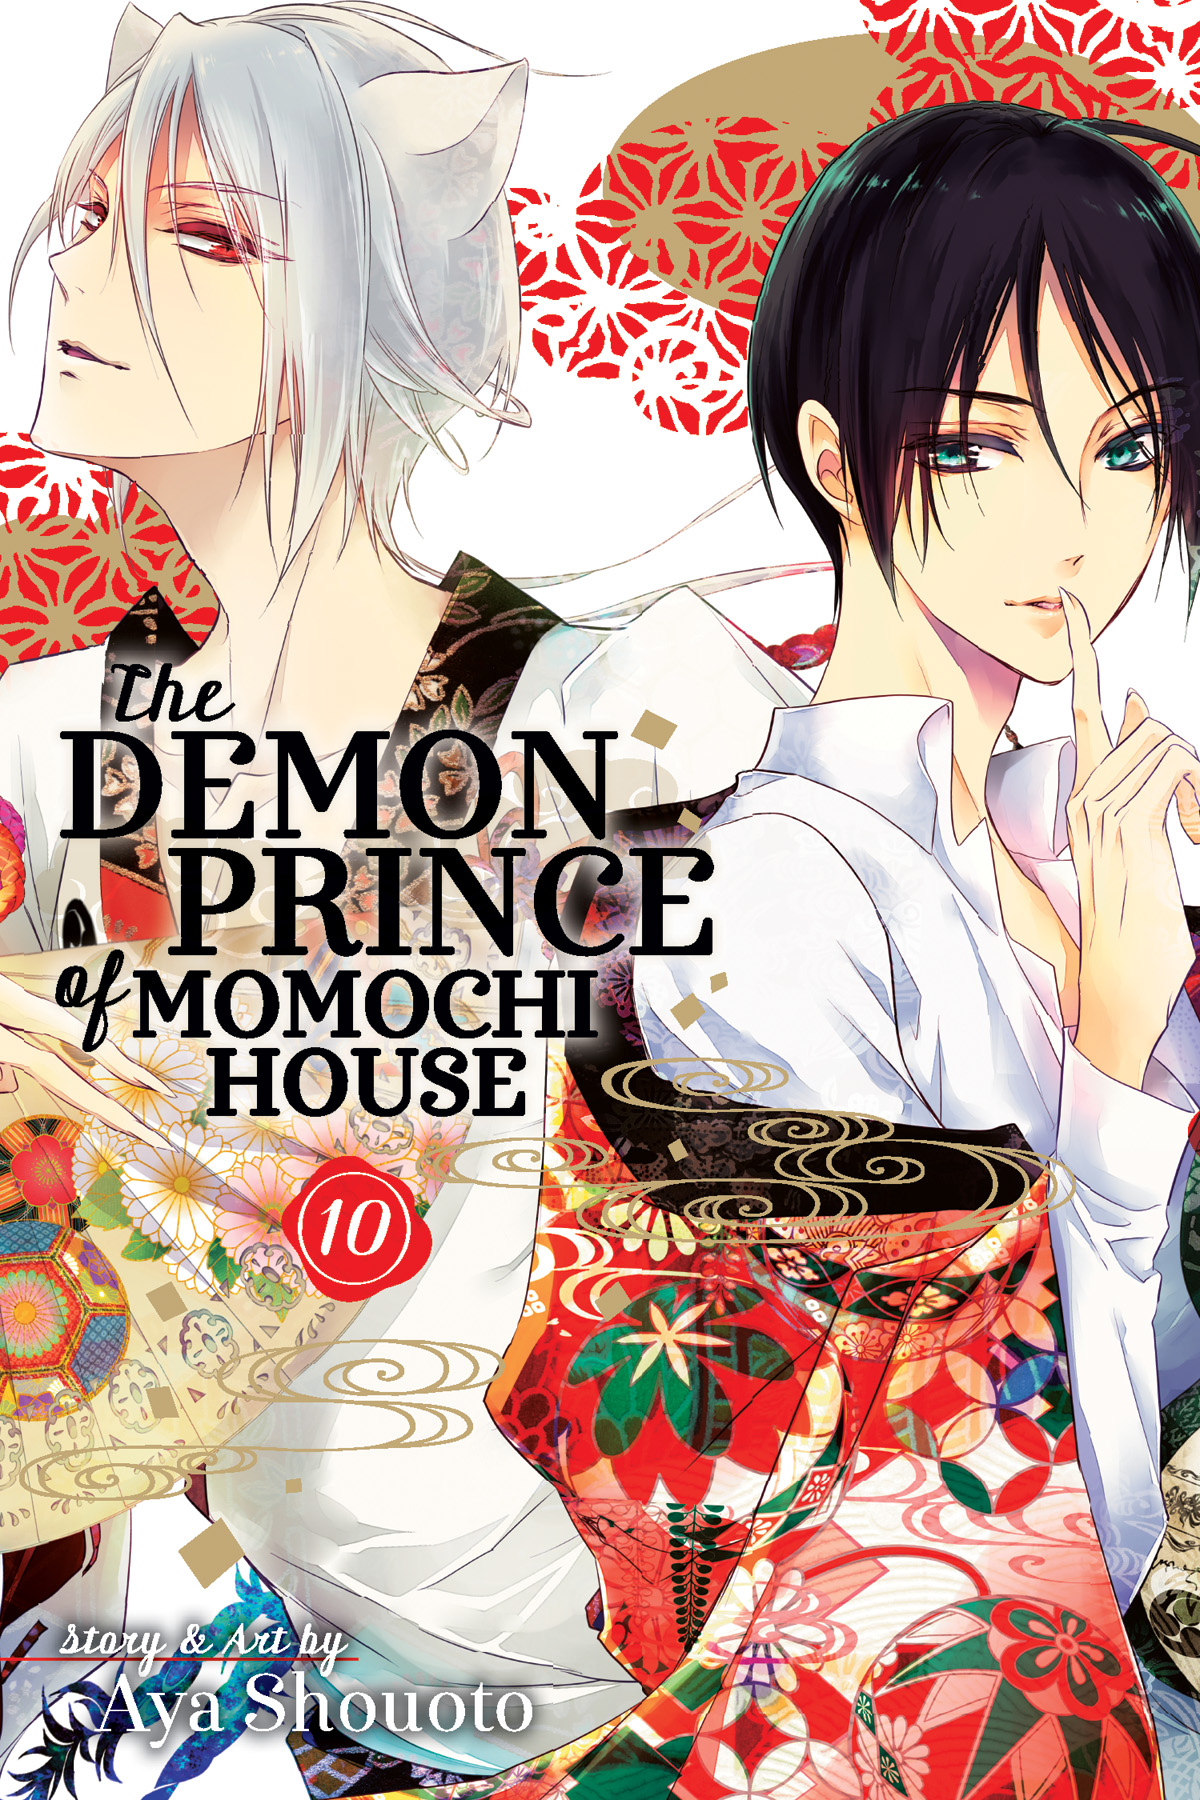 DEMON PRINCE OF MOMOCHI HOUSE GN VOL 10